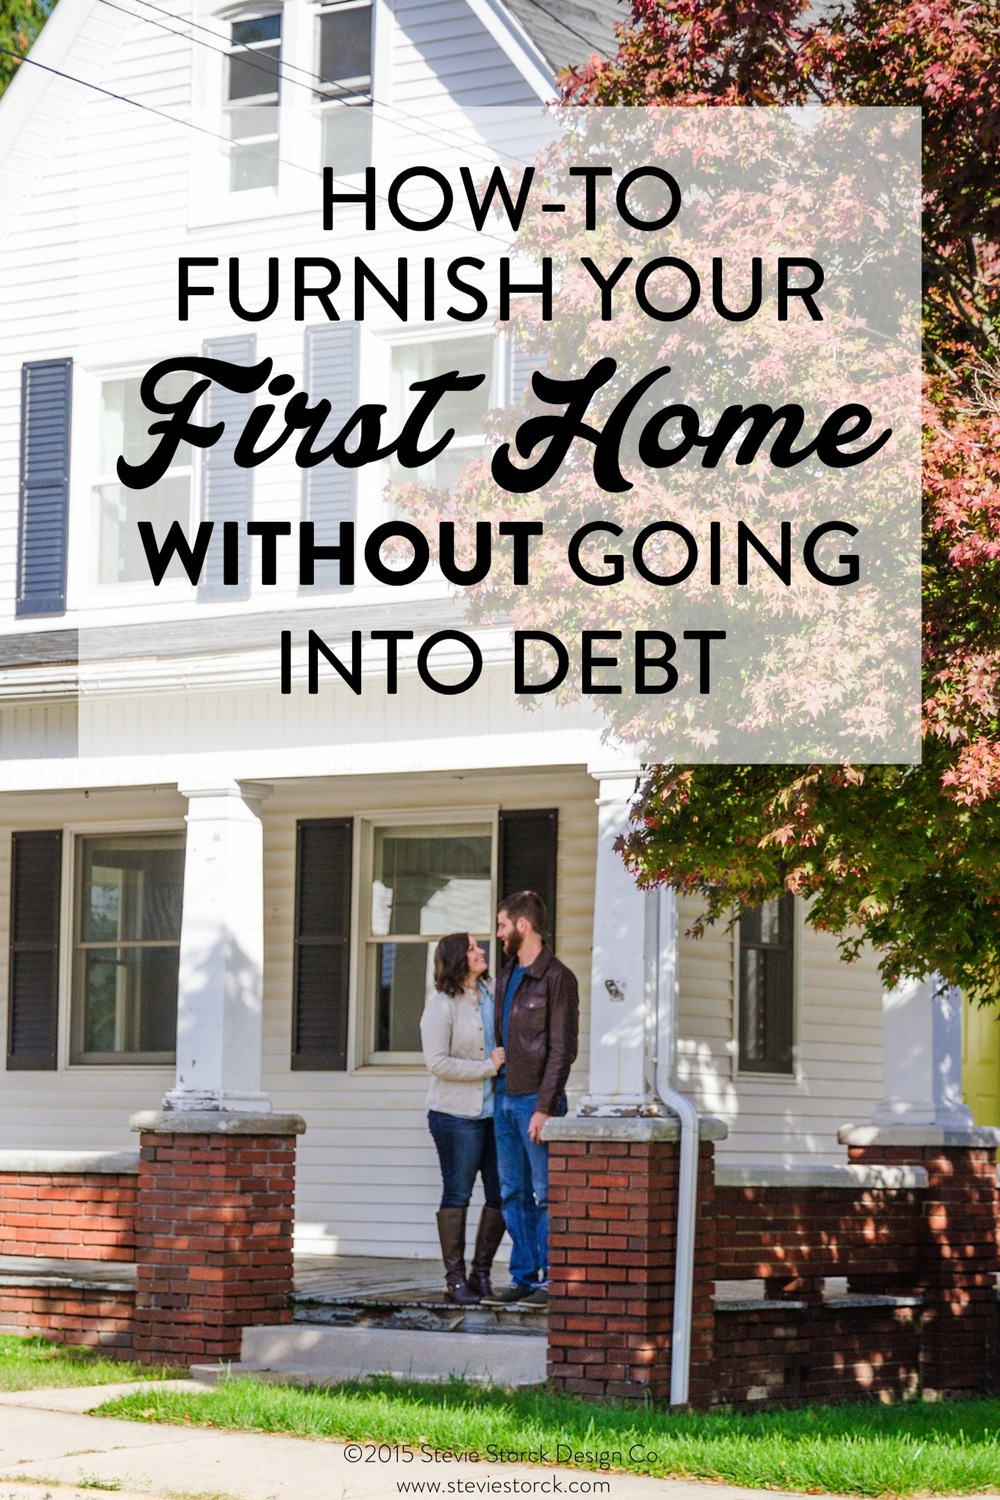 How to Furnish Your First Home WITHOUT Going into Debt! Affordable, budget decorating tips from Stevie Storck Design Co.